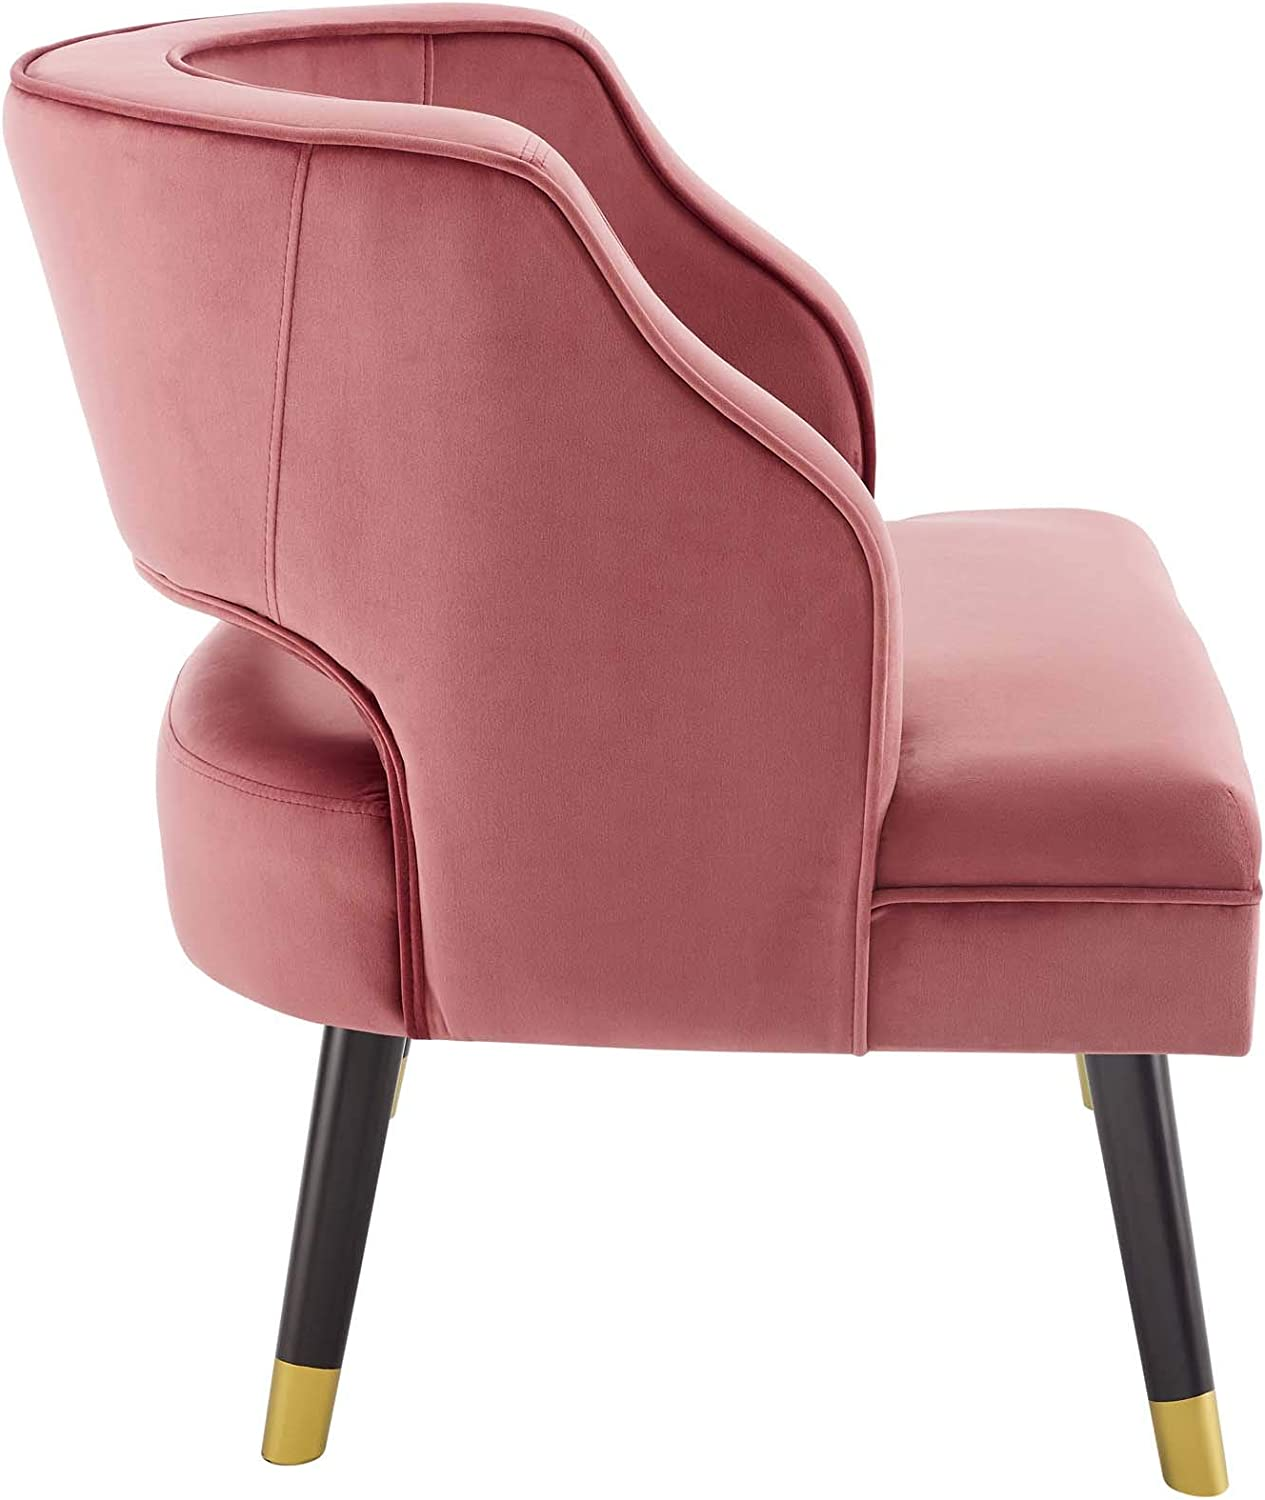 Modway Traipse Button Tufted Open Back Performance Velvet Armchair, Dusty Rose